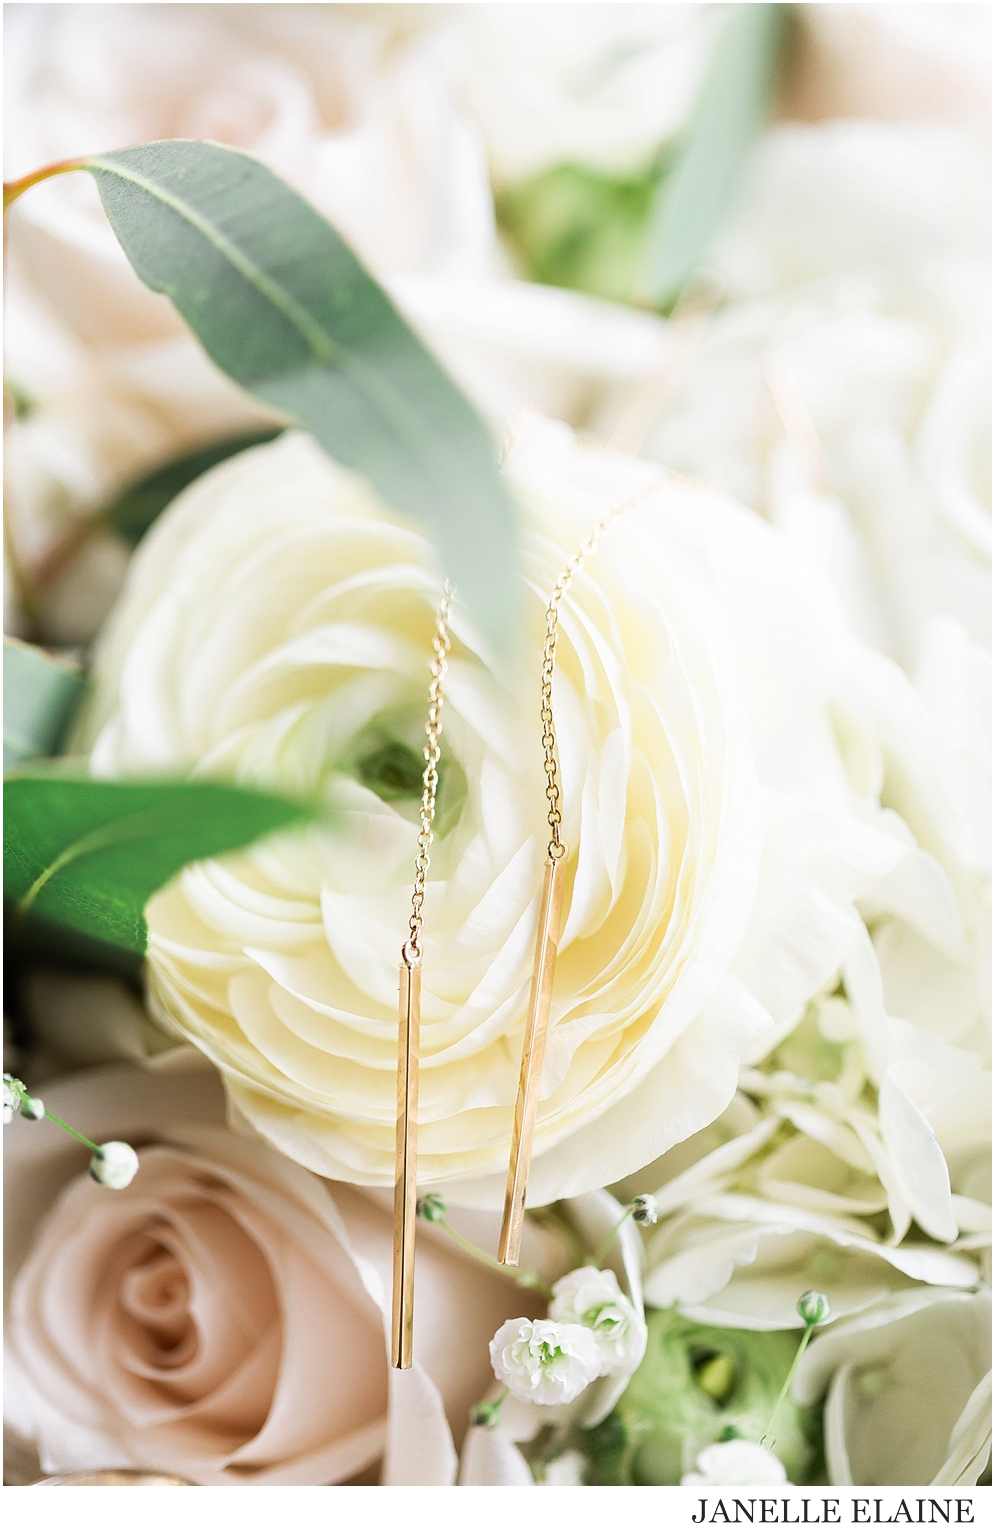 Tricia and Nathan Goddard Wedding-Getting Ready Photos-Janelle Elaine Photography-32.jpg